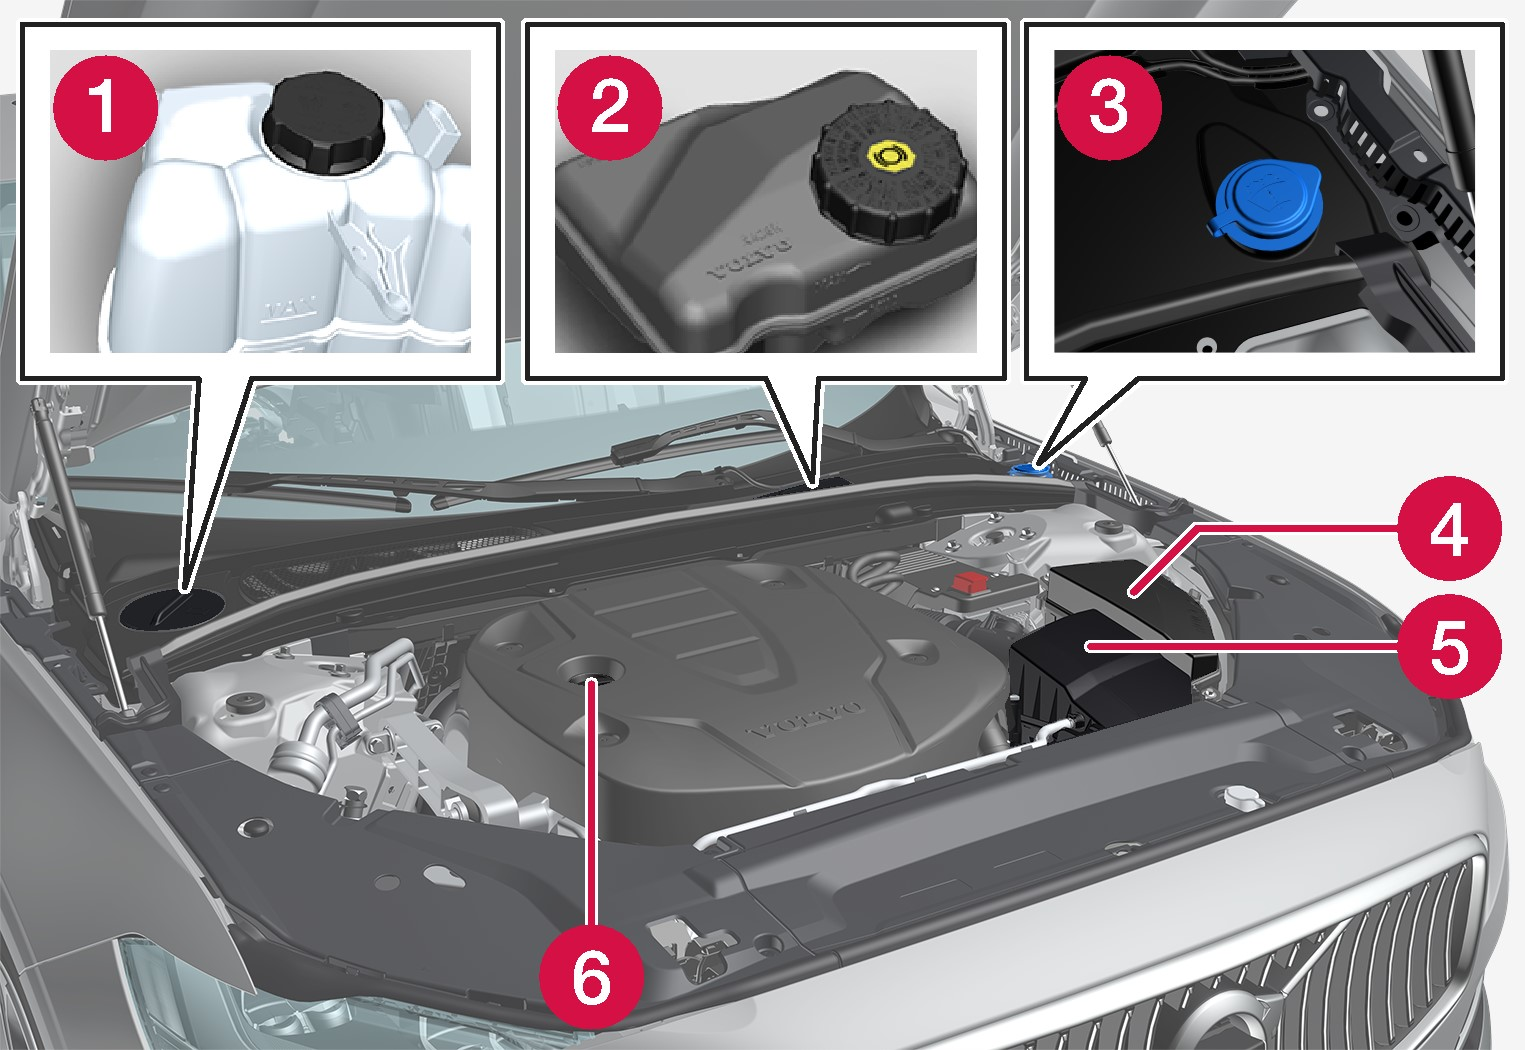 P5-1617-S90/V90 Engine compartment overview